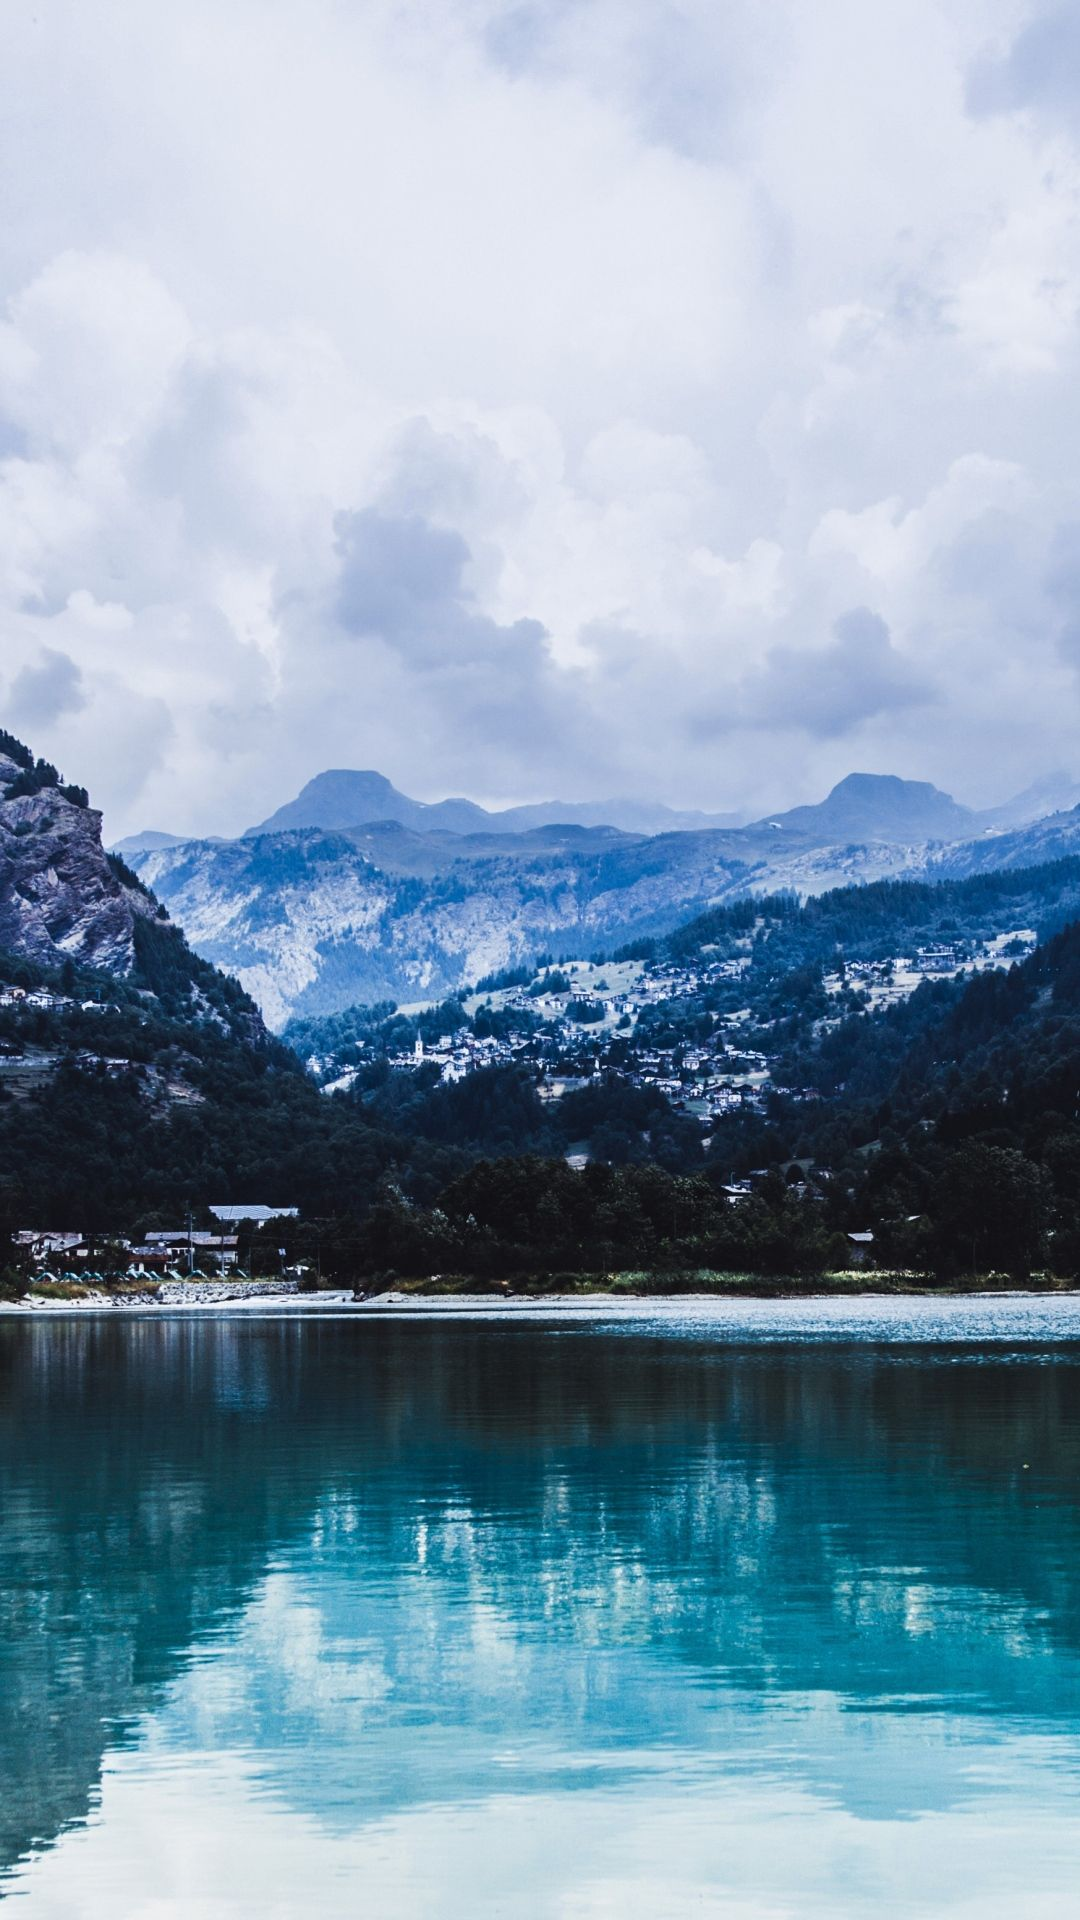 Wallpapers For Iphone 6 Mountain Lake